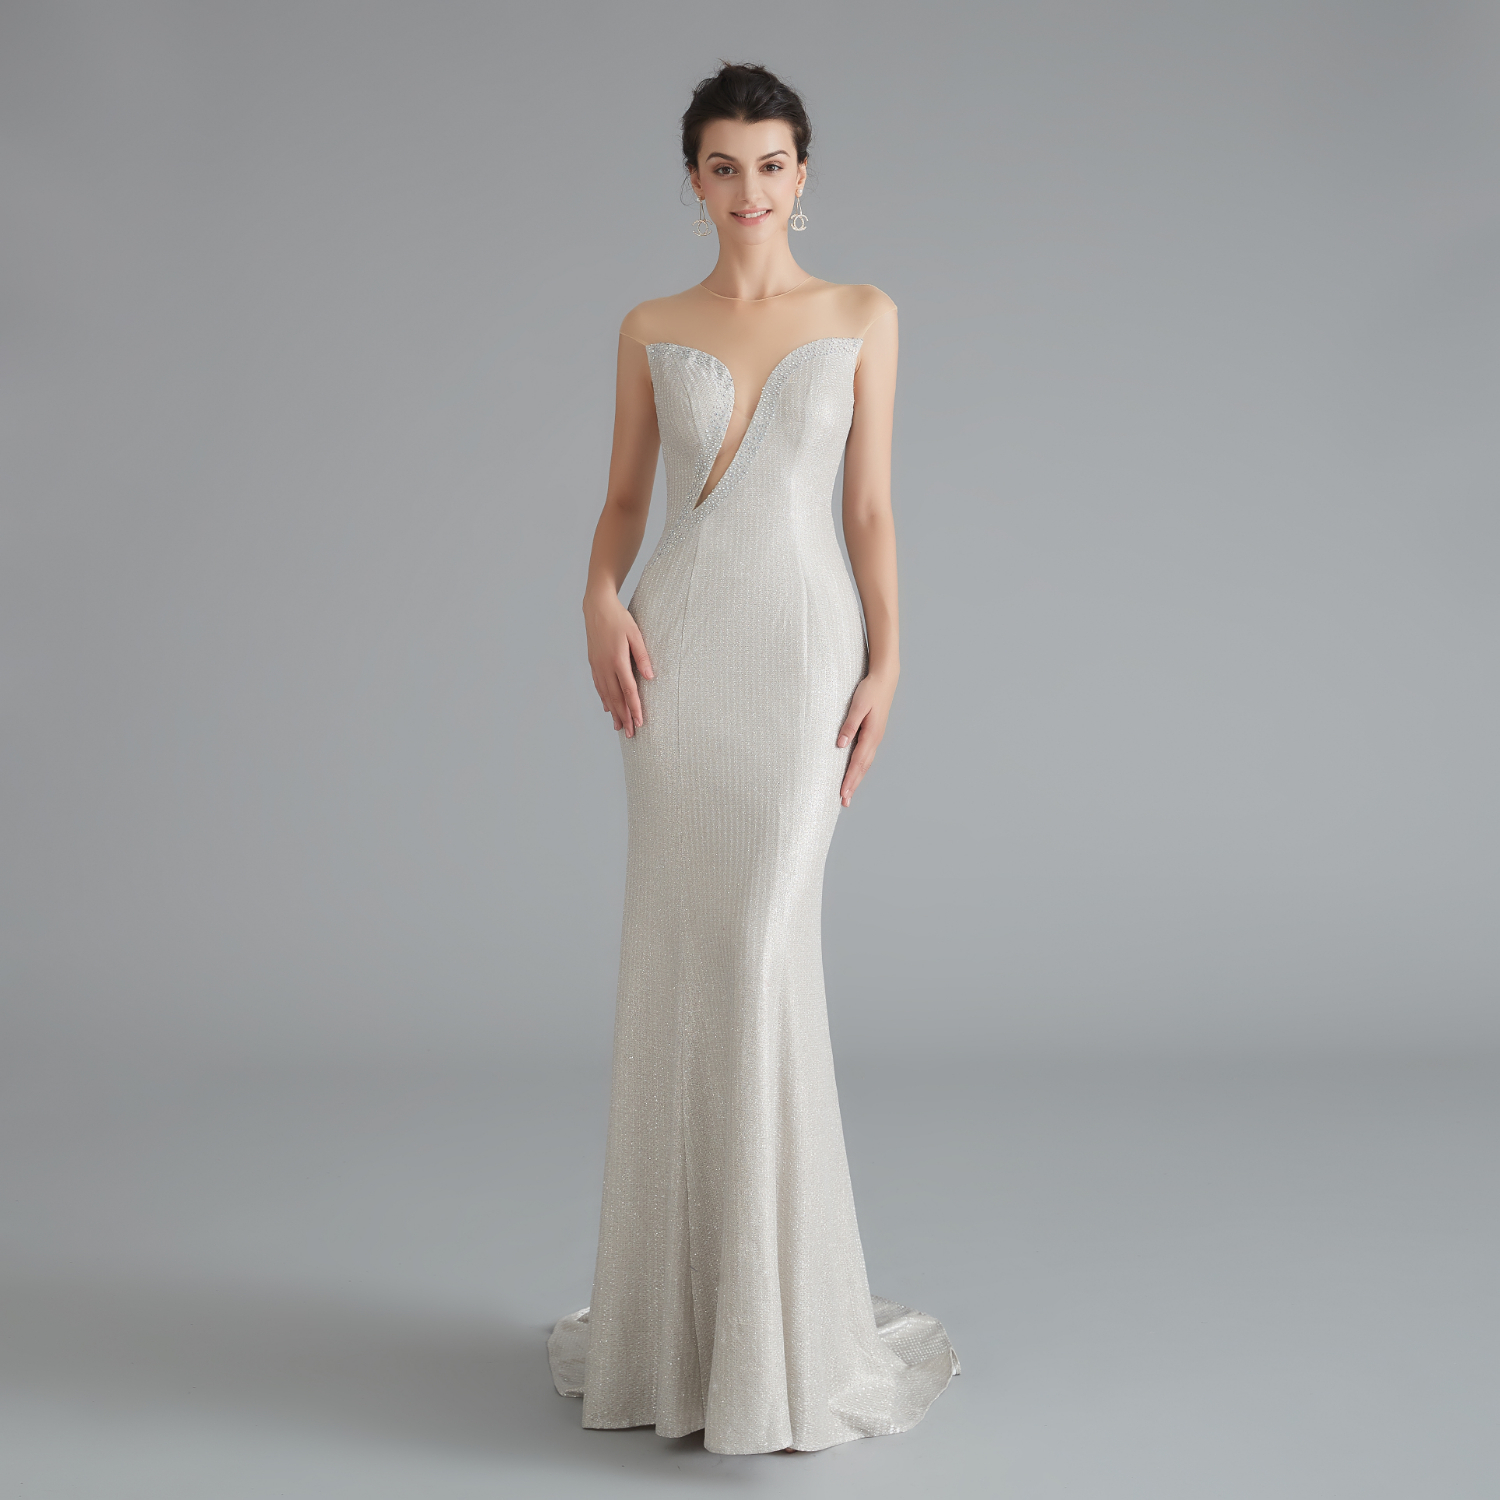 Vivian's Bridal Sexy Front Cut-out Illusion O-neck Mermaid   Evening     Dress   2019 Elegant Beading Sweep Train Formal Party   Dress